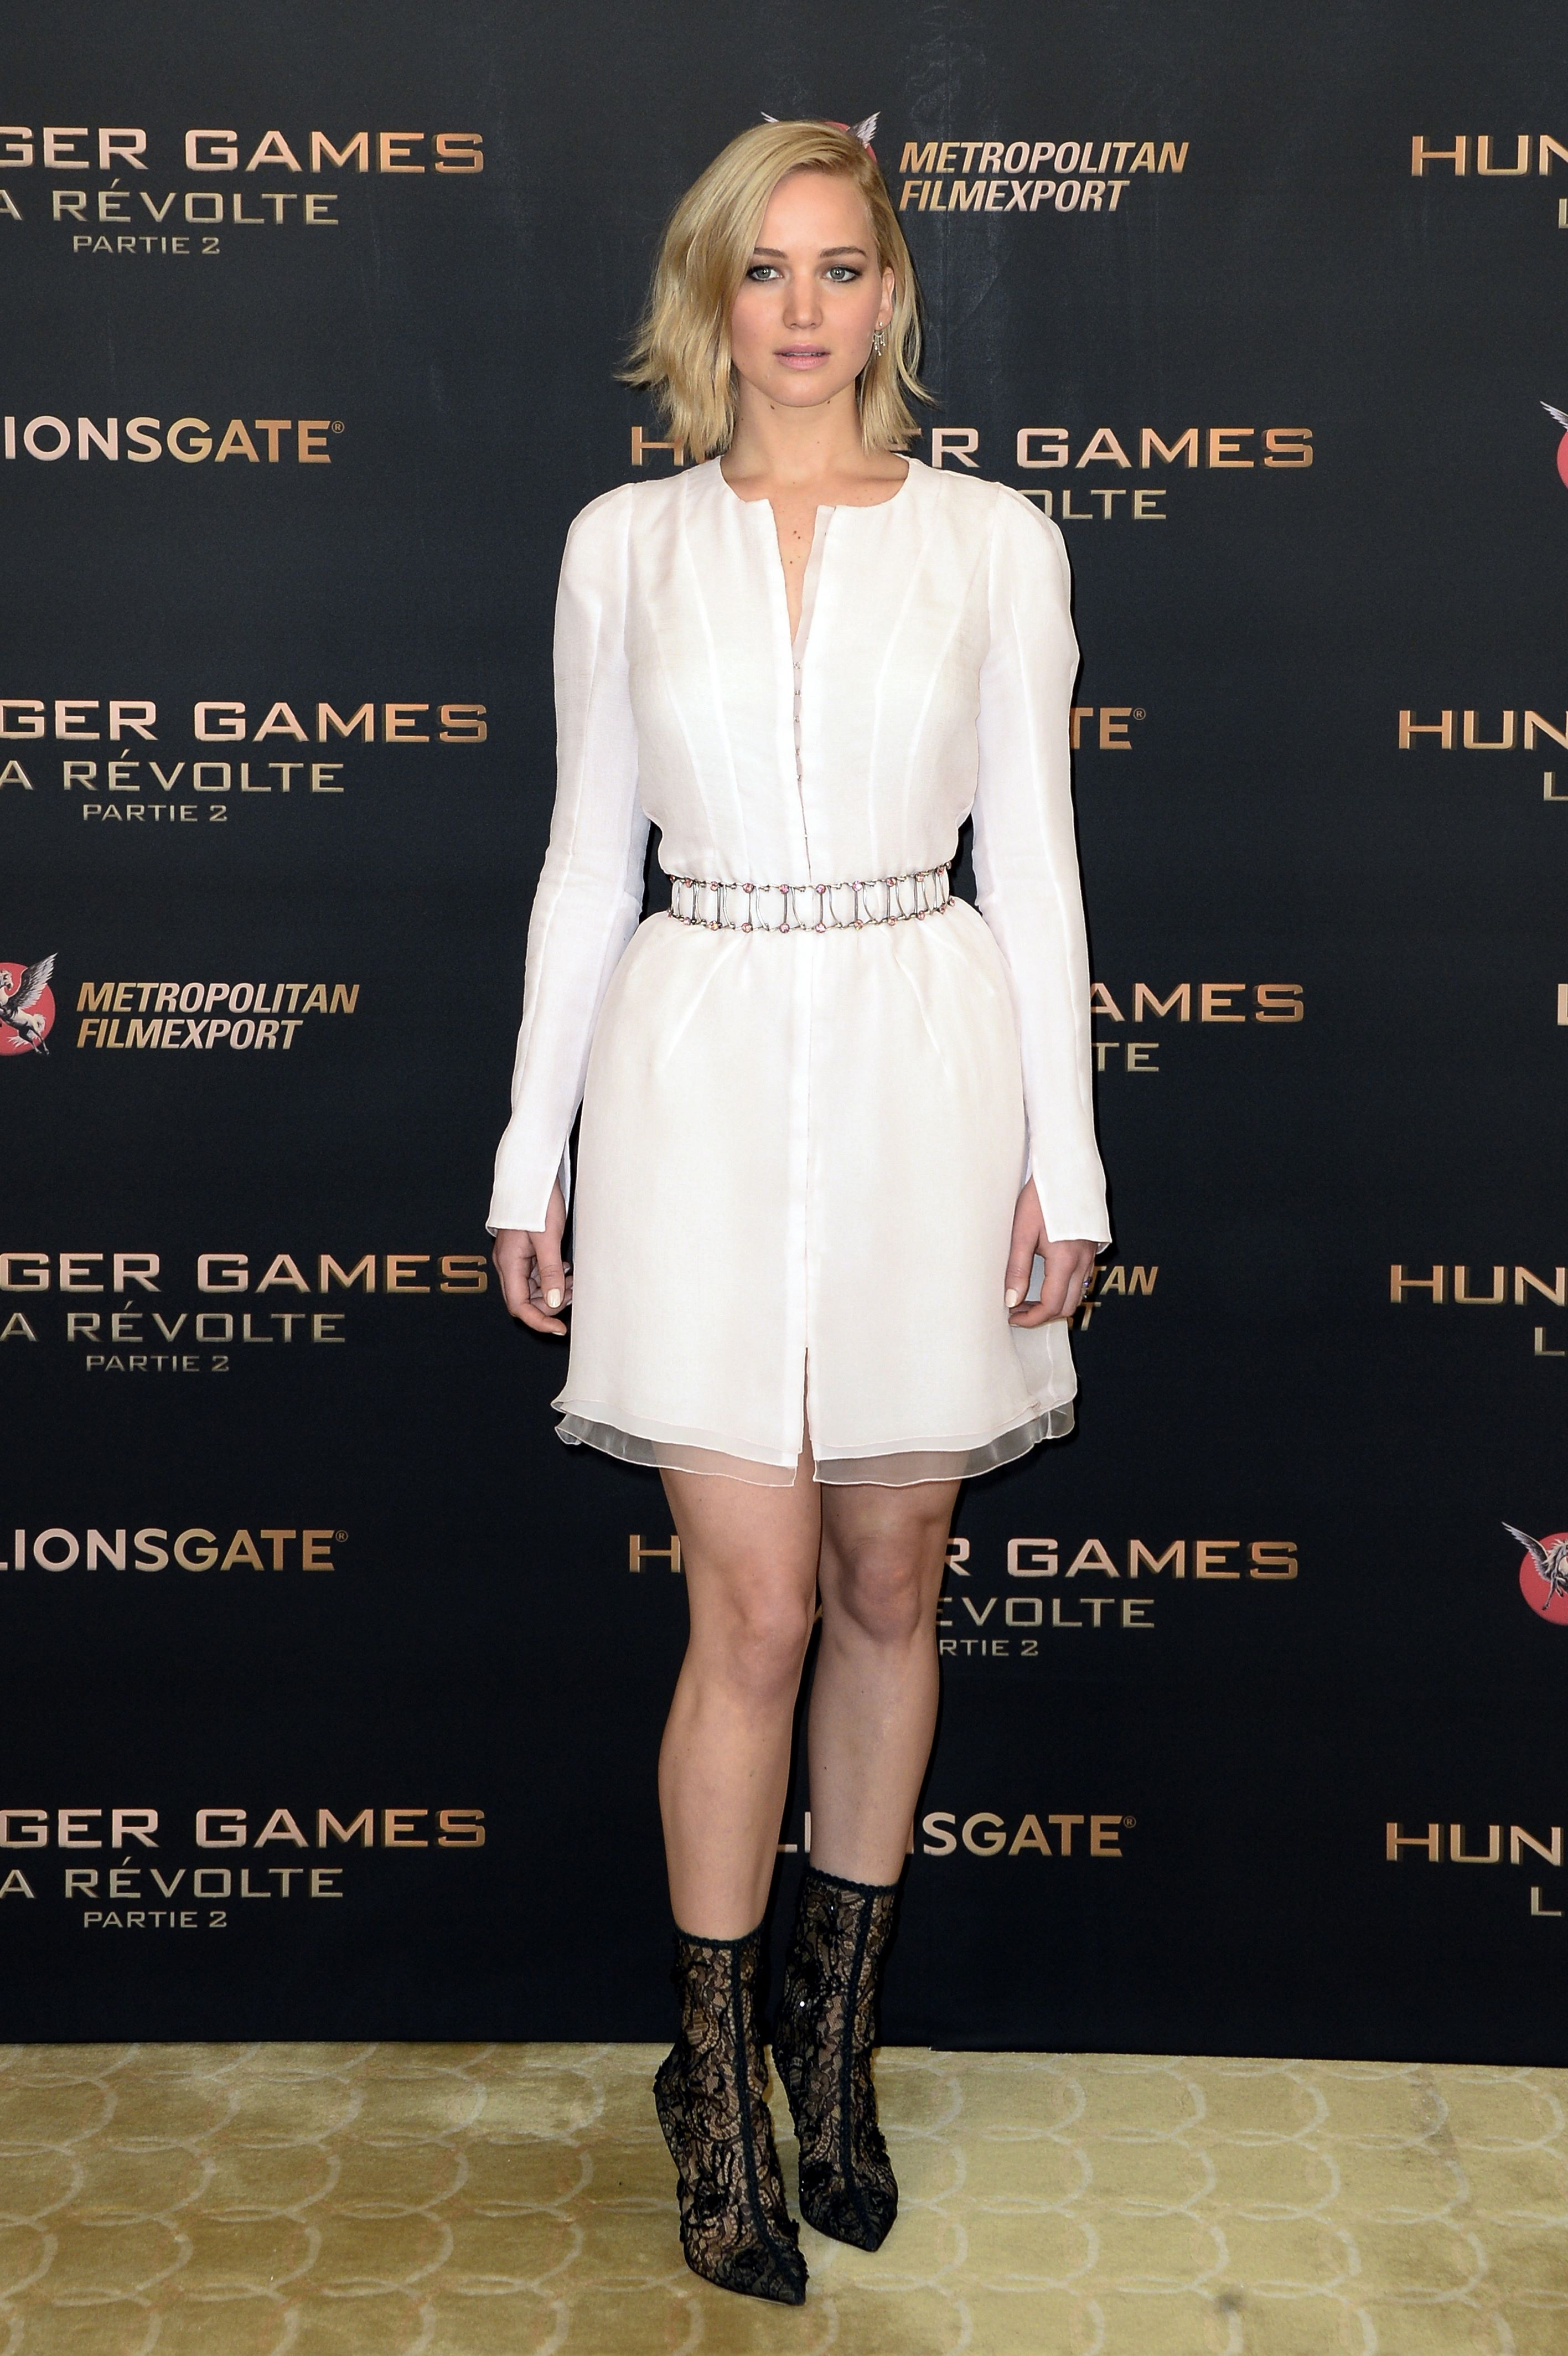 jennifer_lawrence_poses_during